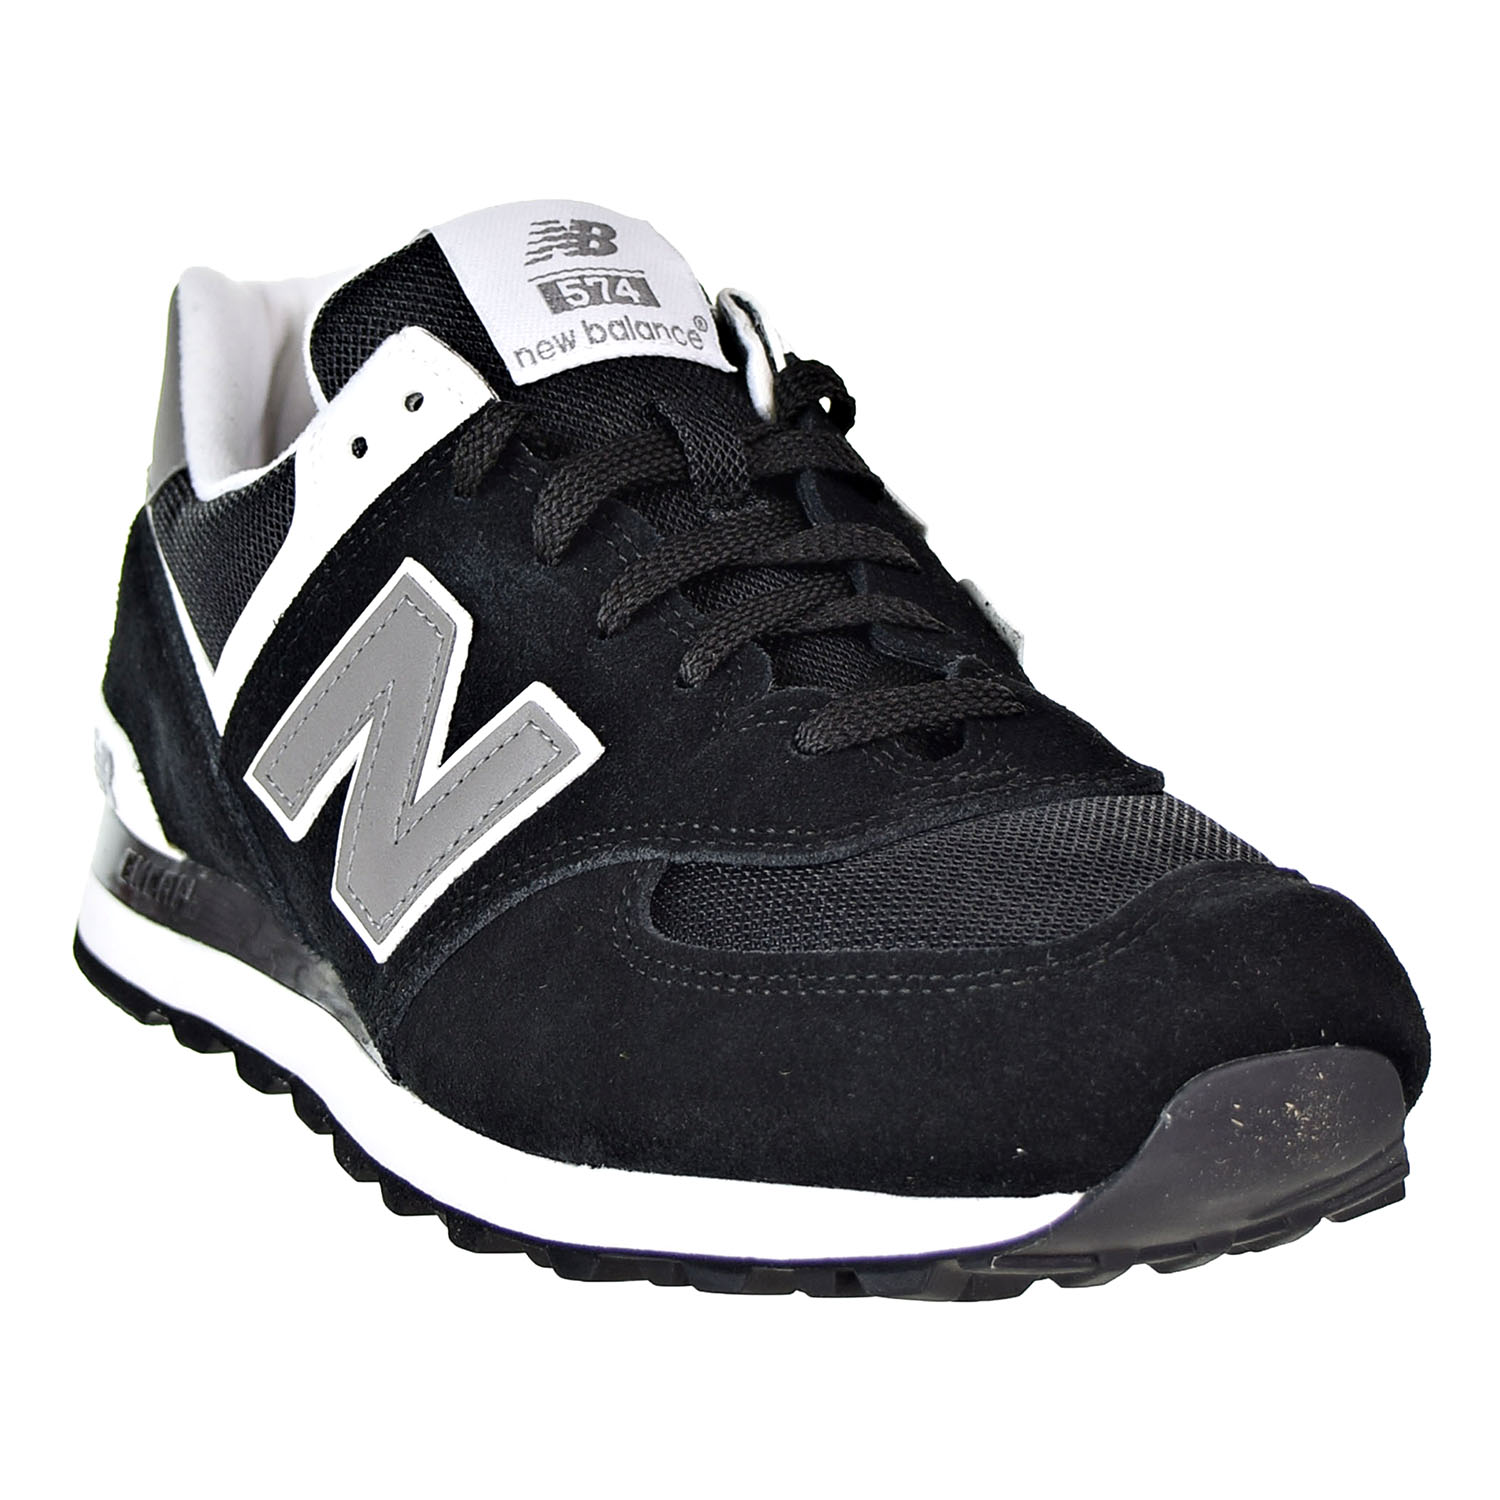 super popular eeb43 fadd6 Details about New Balance 574 Men's Shoes Black/Grey/White M574-SKW